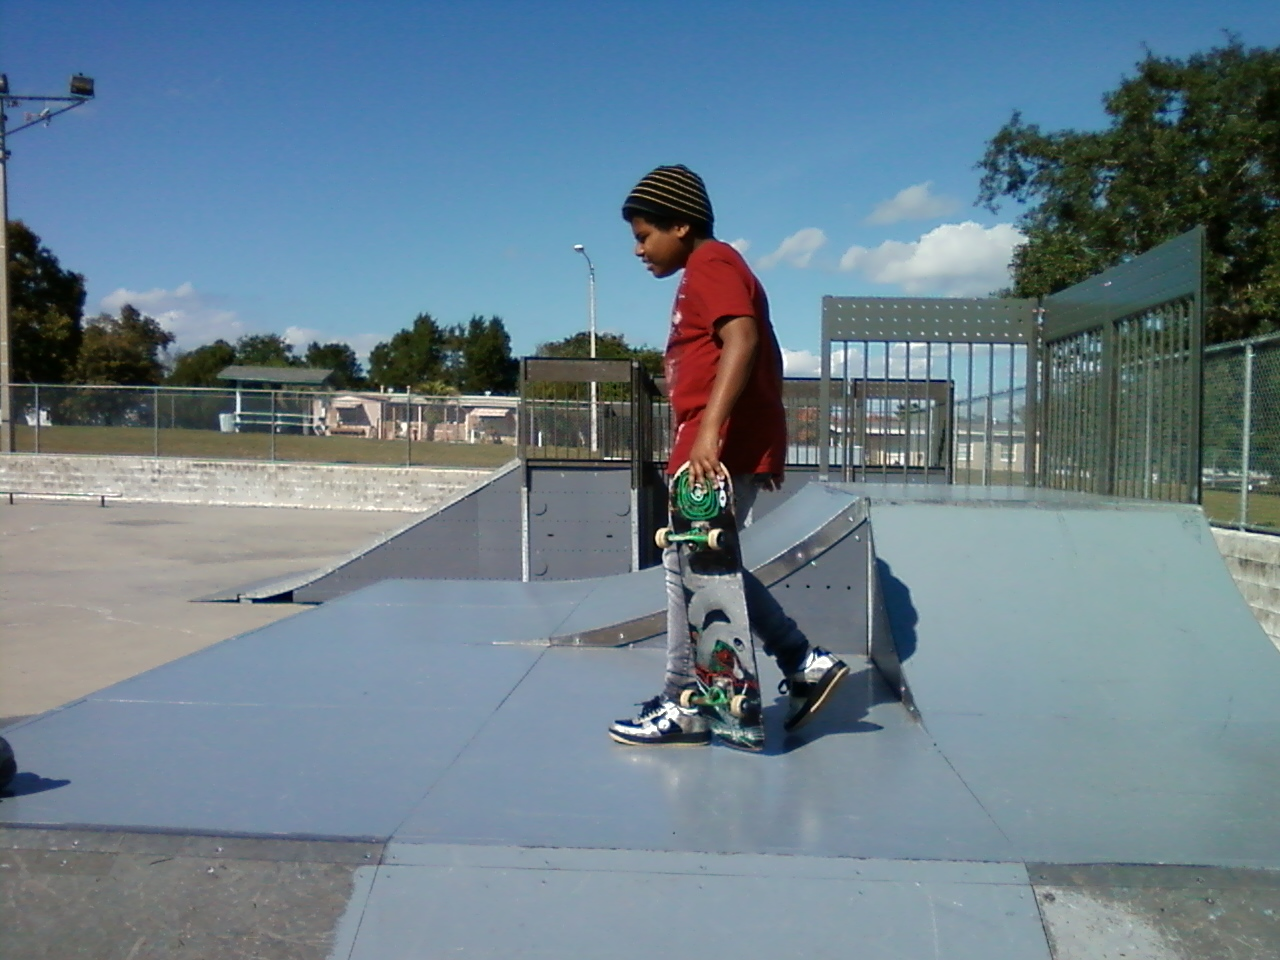 13 year old son skateboarding at the skate park